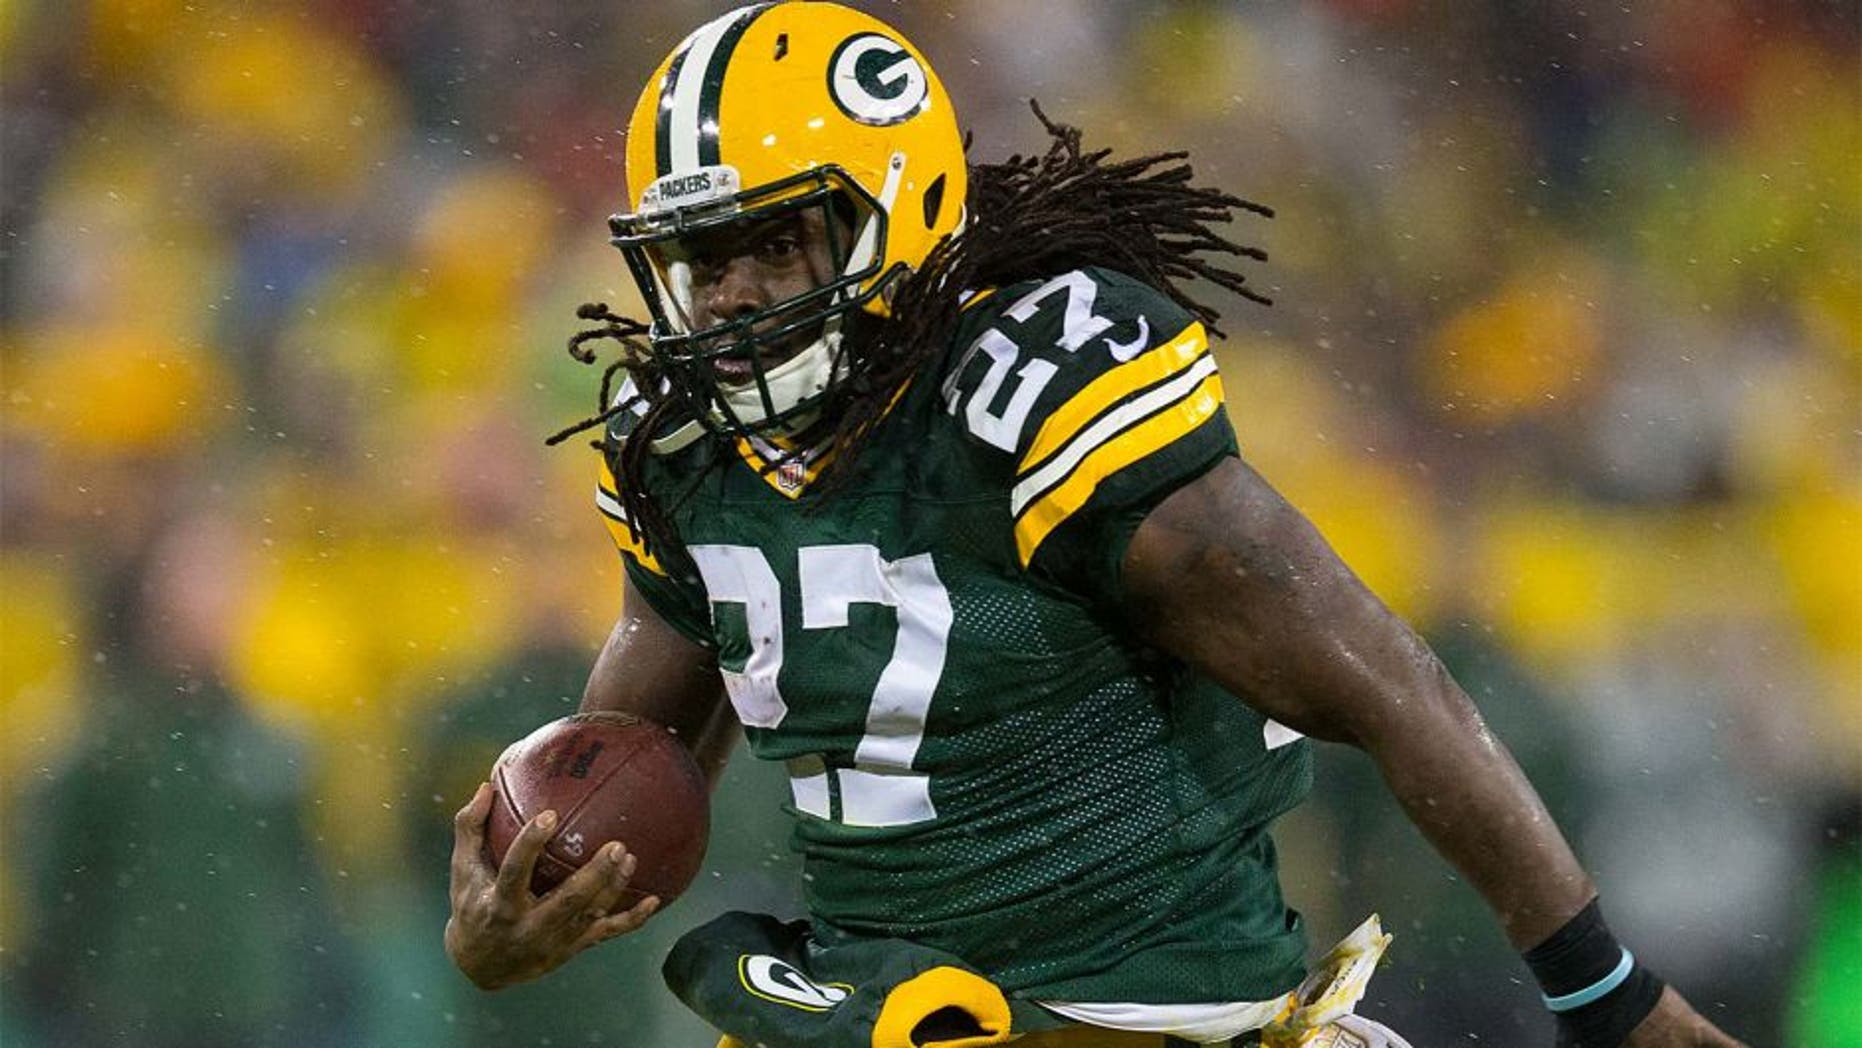 Nov 26, 2015; Green Bay, WI, USA; Green Bay Packers running back Eddie Lacy (27) during the NFL game against the Chicago Bears on Thanksgiving at Lambeau Field. Chicago won 17-13. Mandatory Credit: Jeff Hanisch-USA TODAY Sports